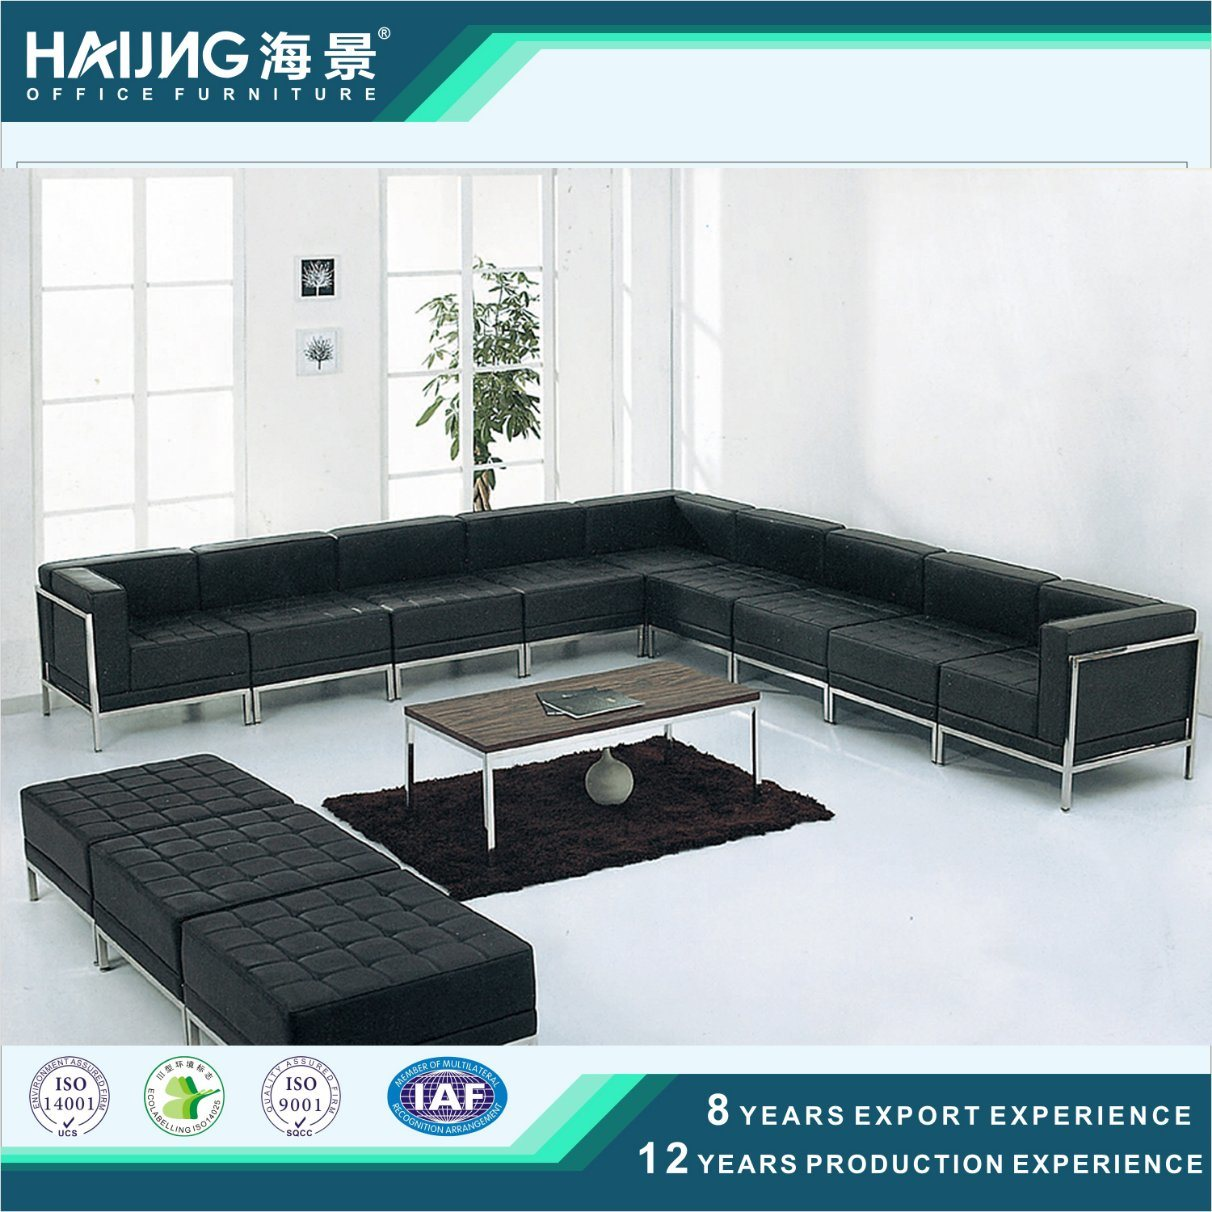 office sofa set. China Factory Customized Modern Office Sofa Design Black PU Leather Set - Combination Sofa, S